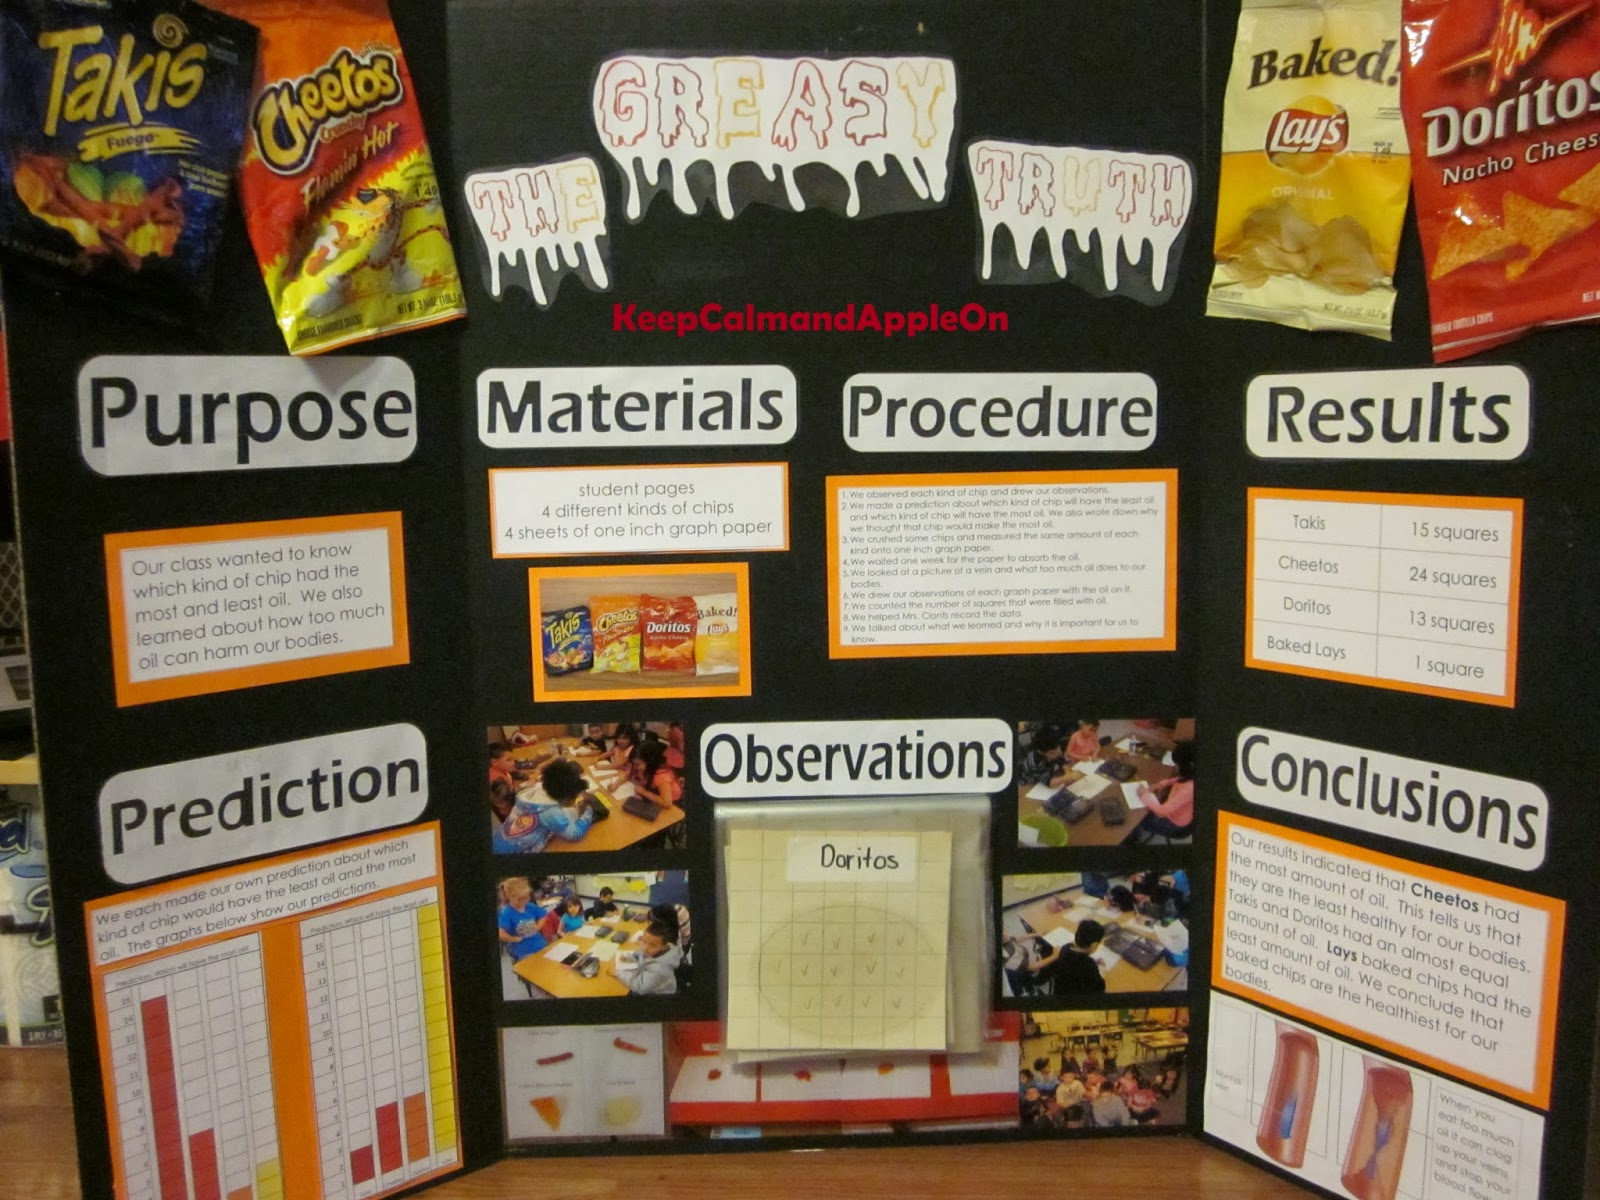 candy science fair projects Chocolate, candy and sweets - science fair projects and experiments: topics, ideas, resources, and sample projects.